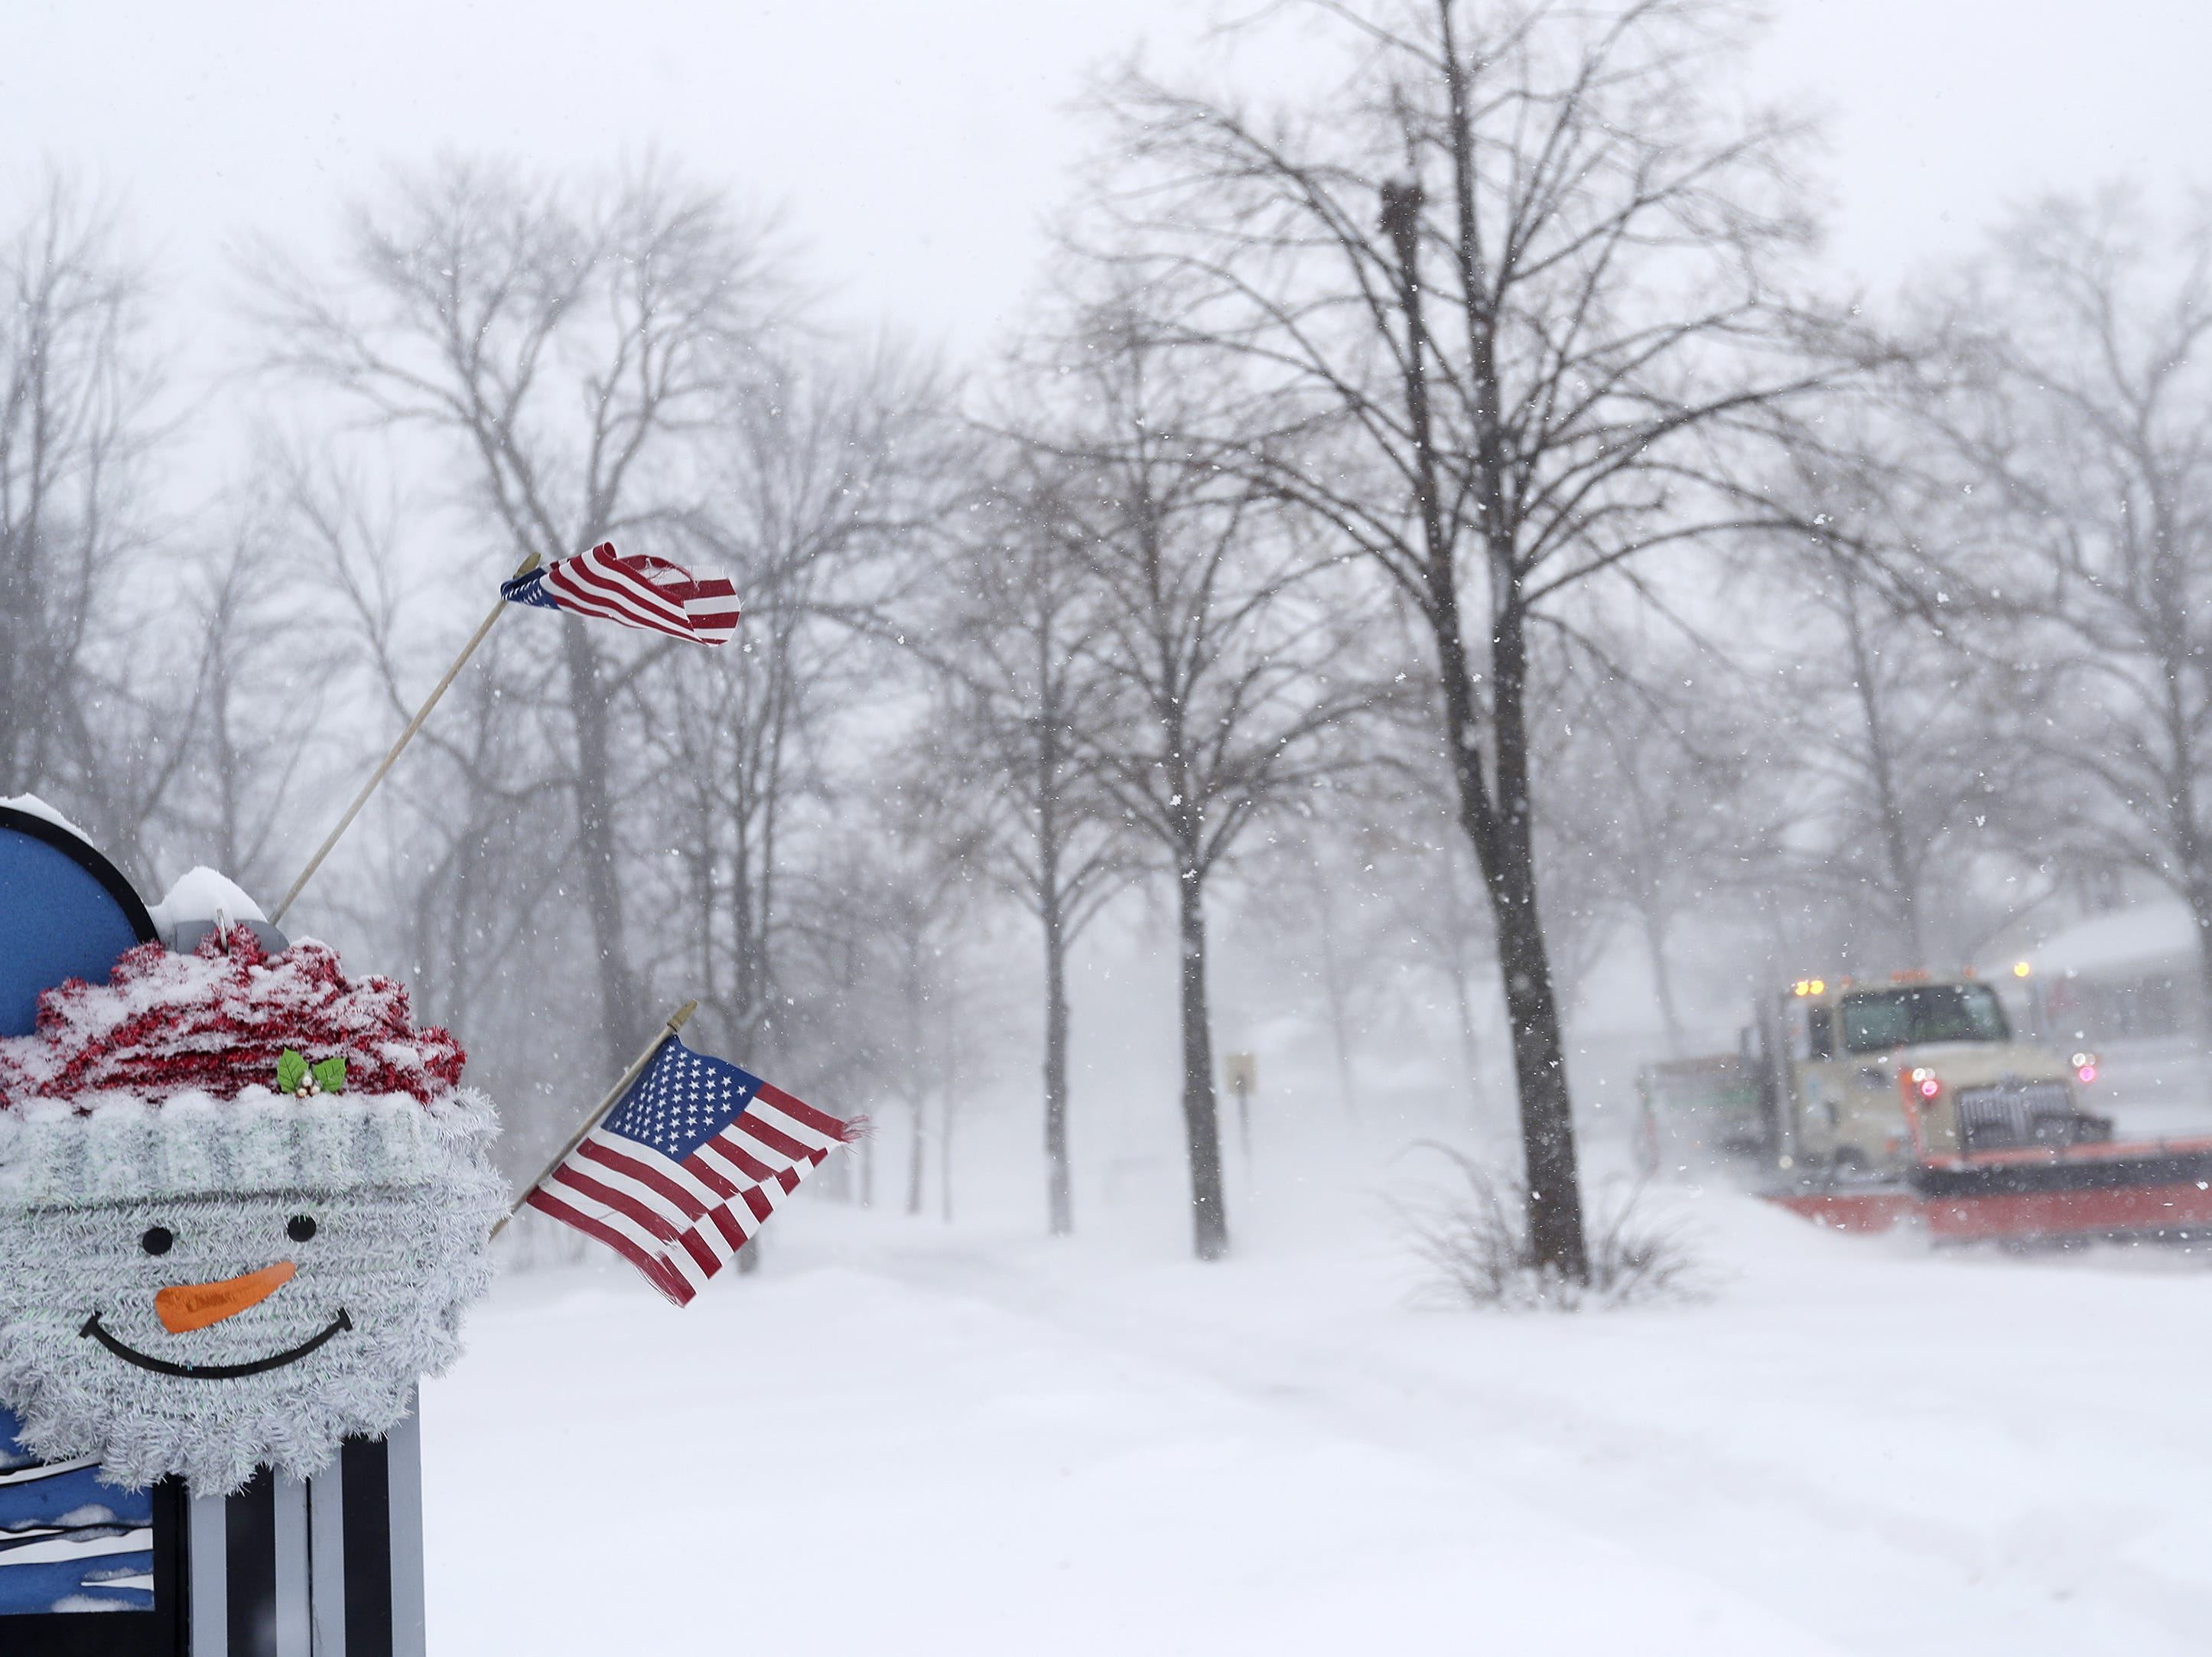 City snow plows clear streets during a snowstorm on Monday, Jan. 28, 2019 in Green Bay, Wis.